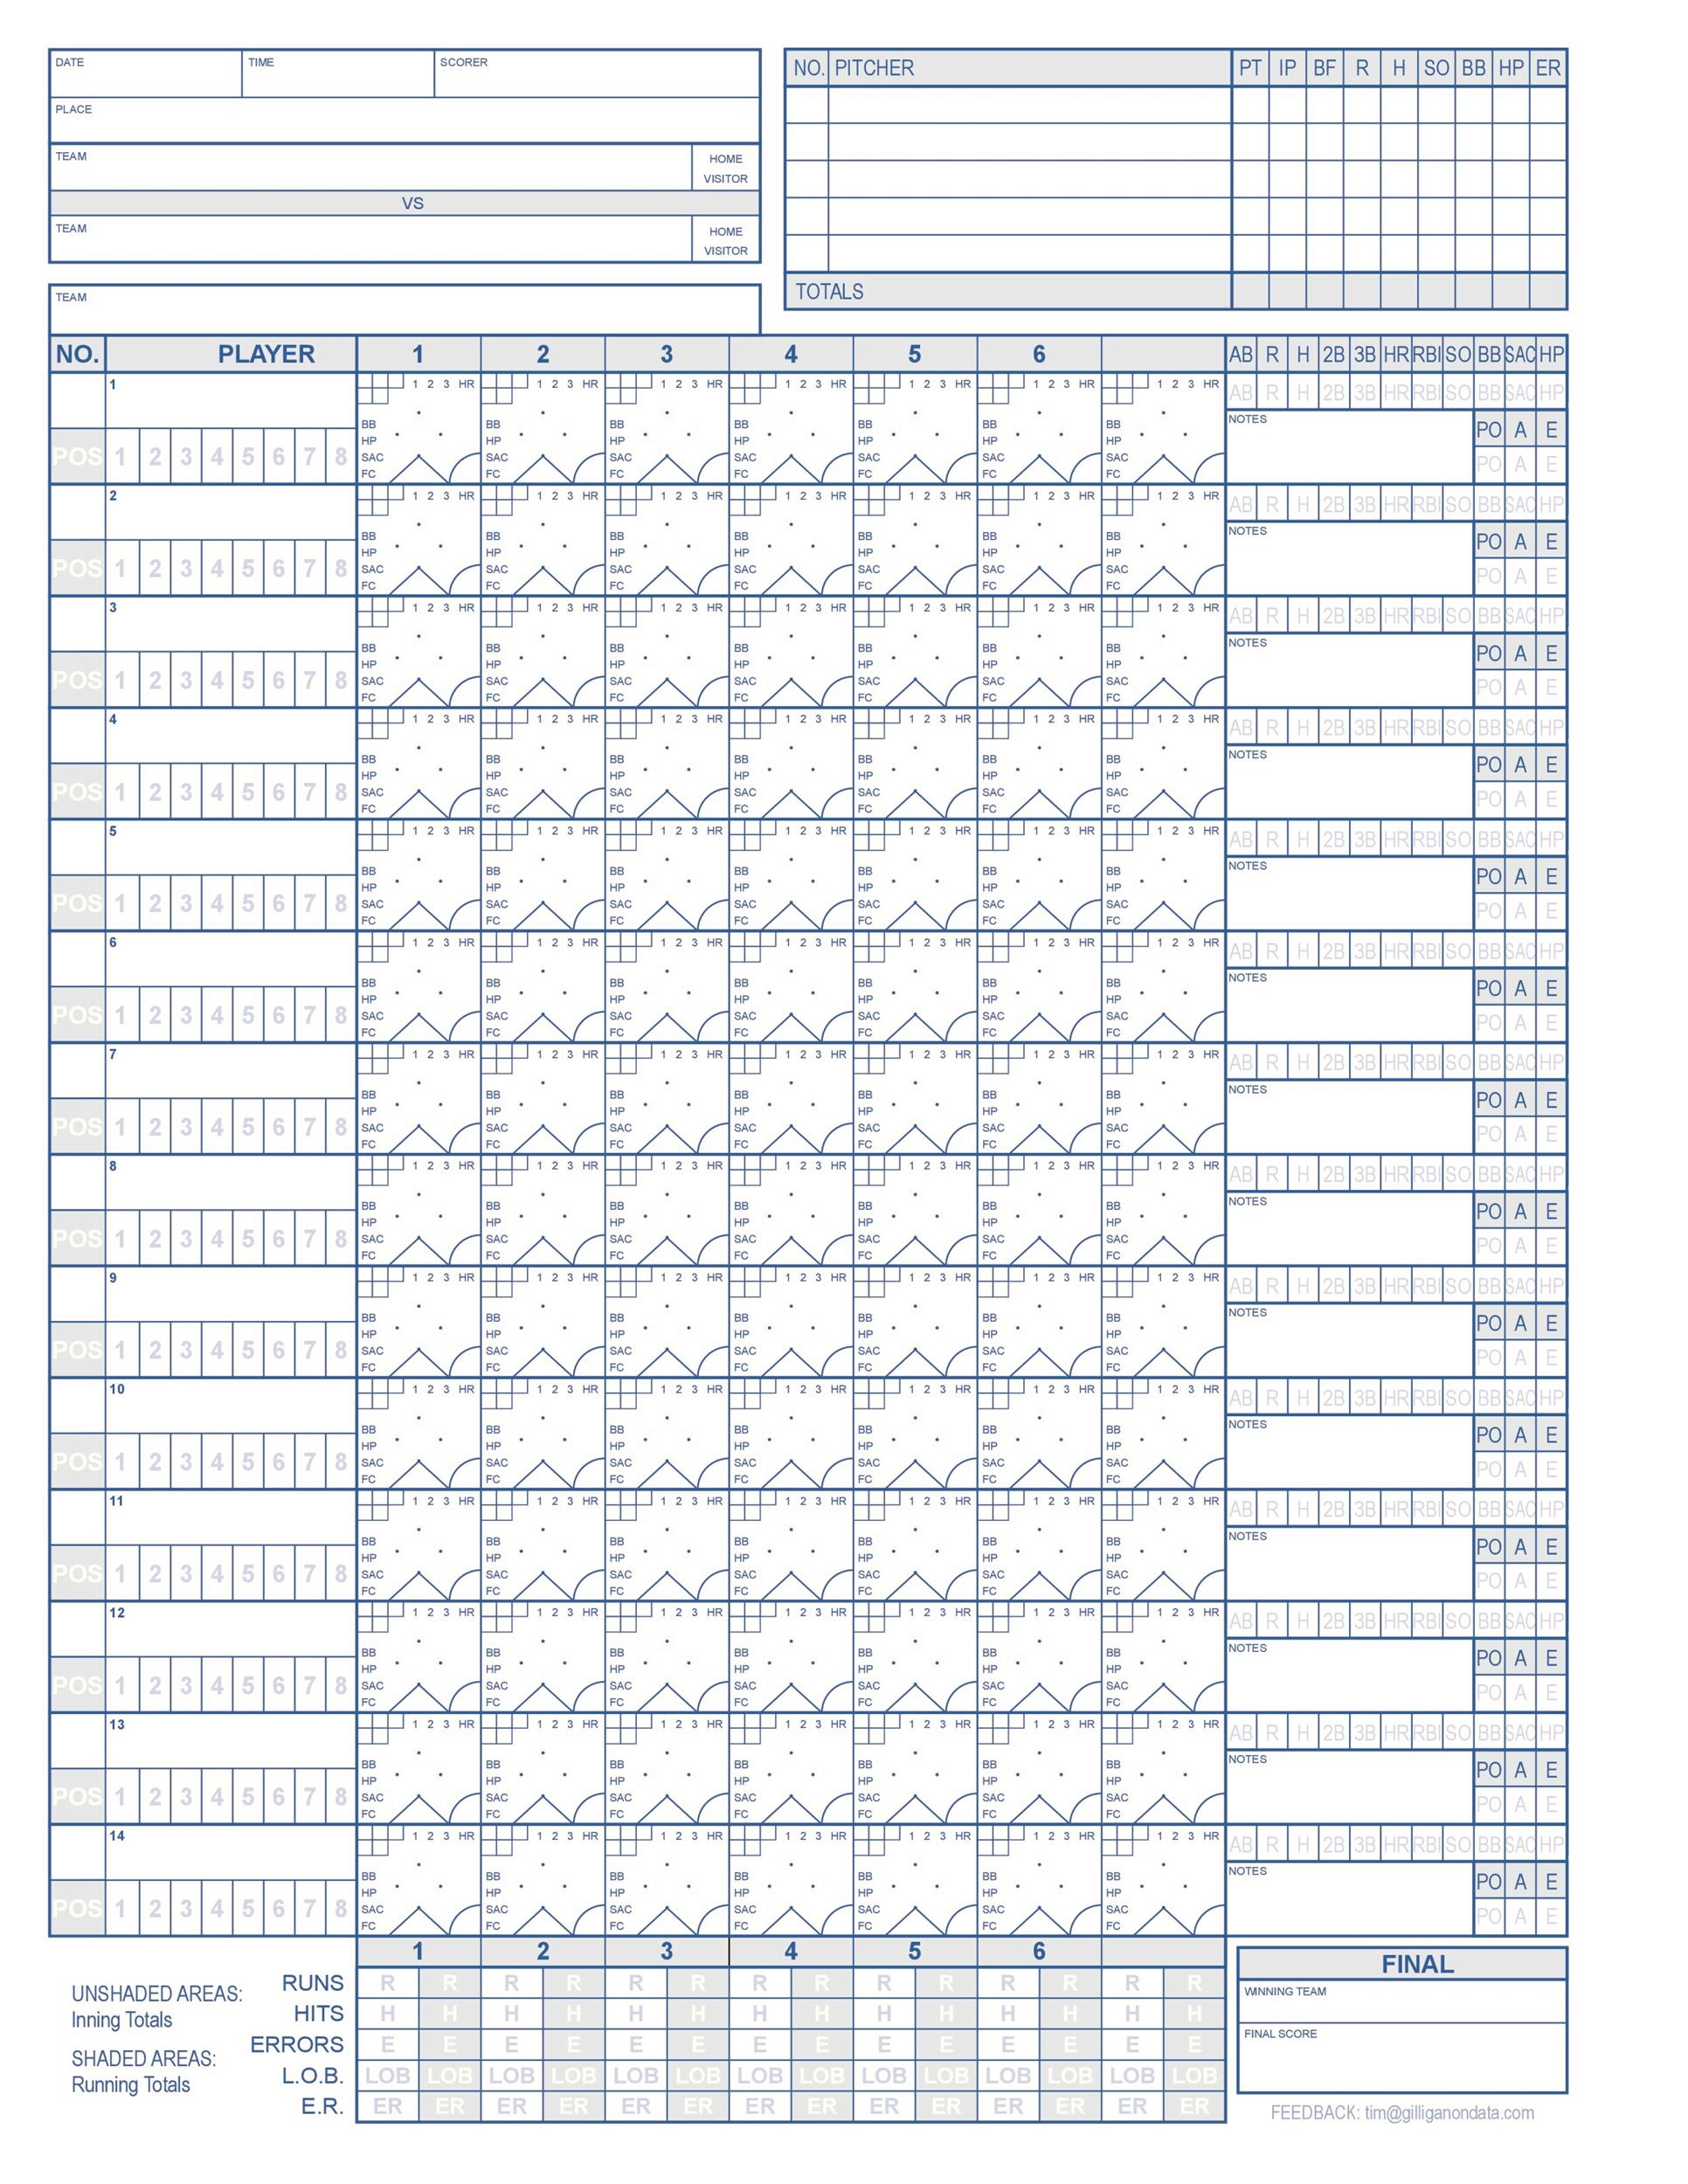 Baseball Roster Template. Baseball Lineup Card Template Free